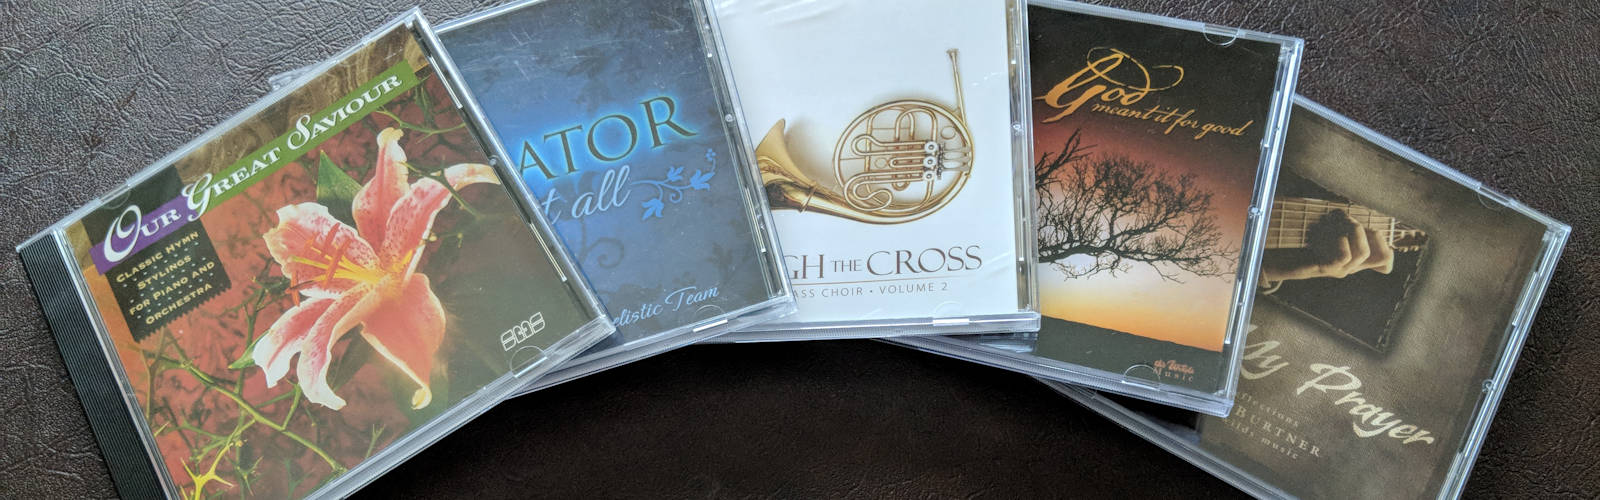 CD Quality Sacred Christian Music